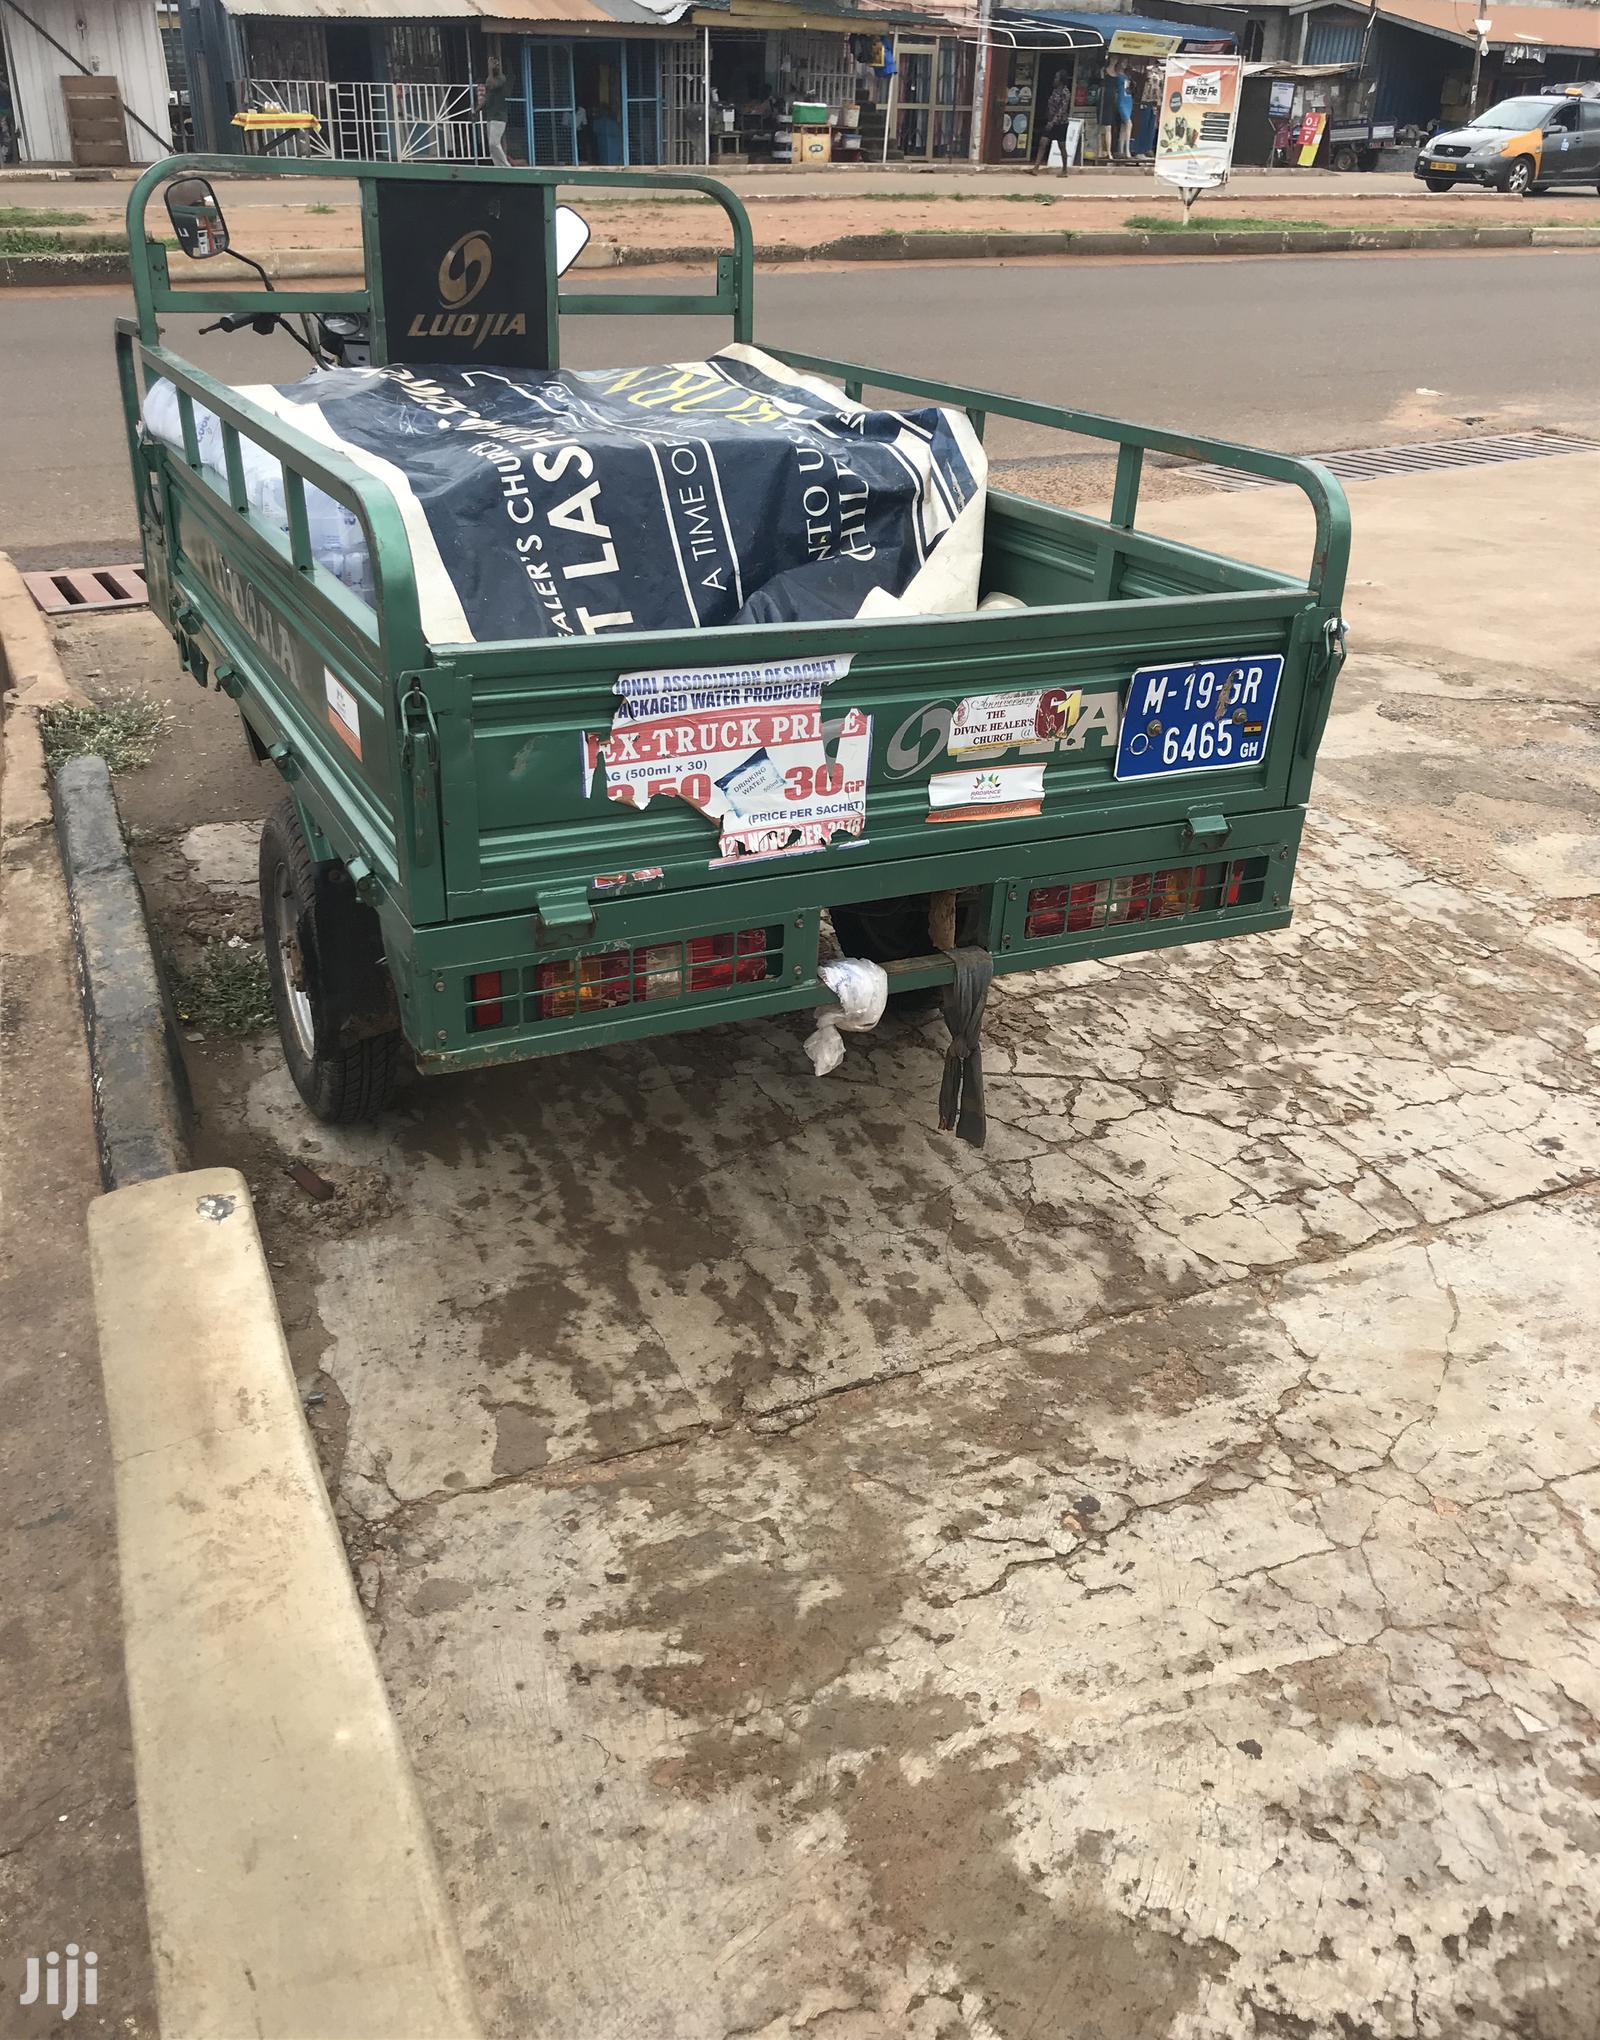 Luojia Motorized Tricycle 2019 Green | Motorcycles & Scooters for sale in Tema Metropolitan, Greater Accra, Ghana